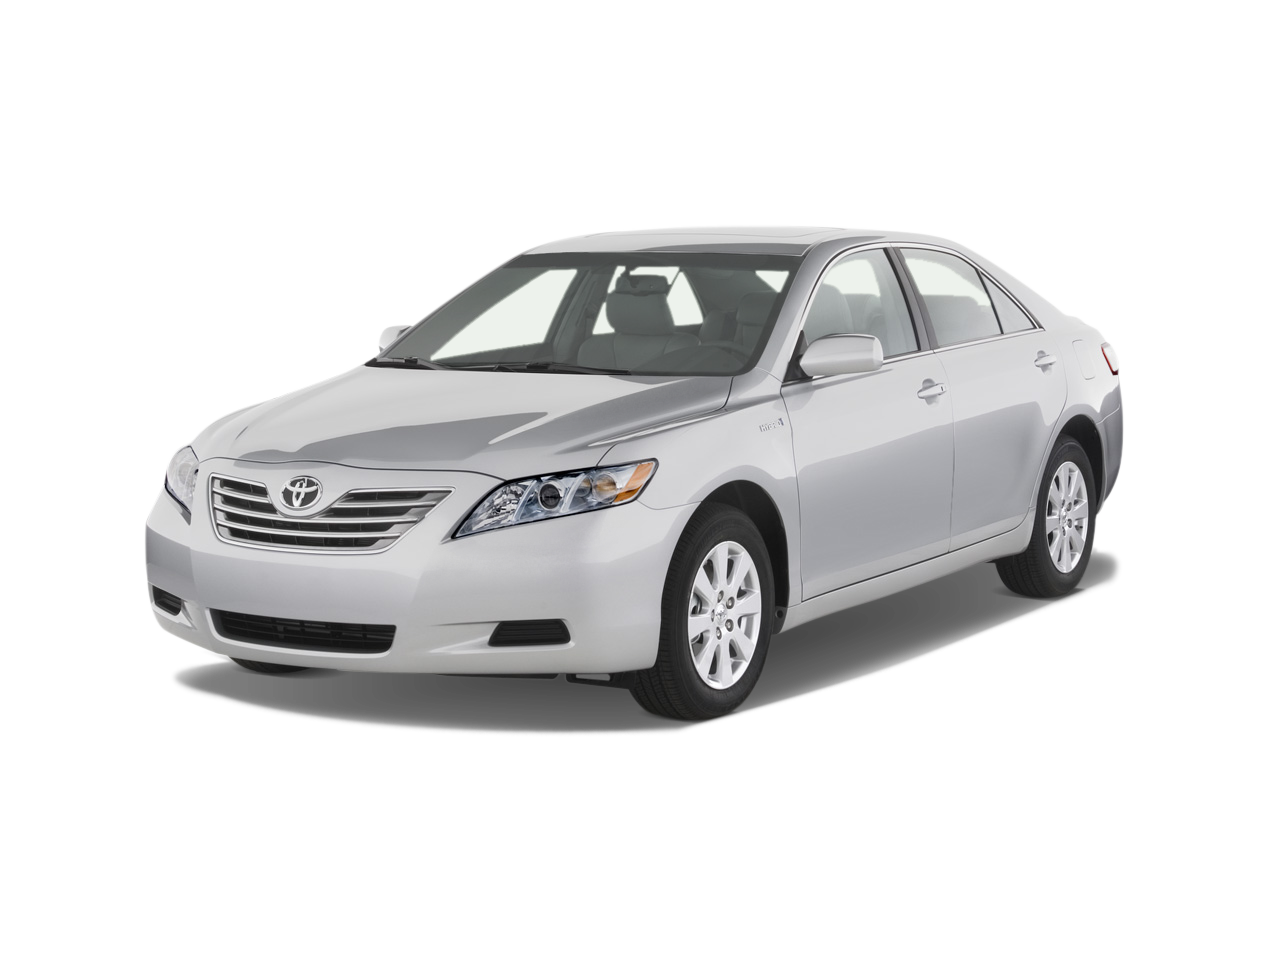 2009 toyota camry xle toyota midsize sedan review. Black Bedroom Furniture Sets. Home Design Ideas